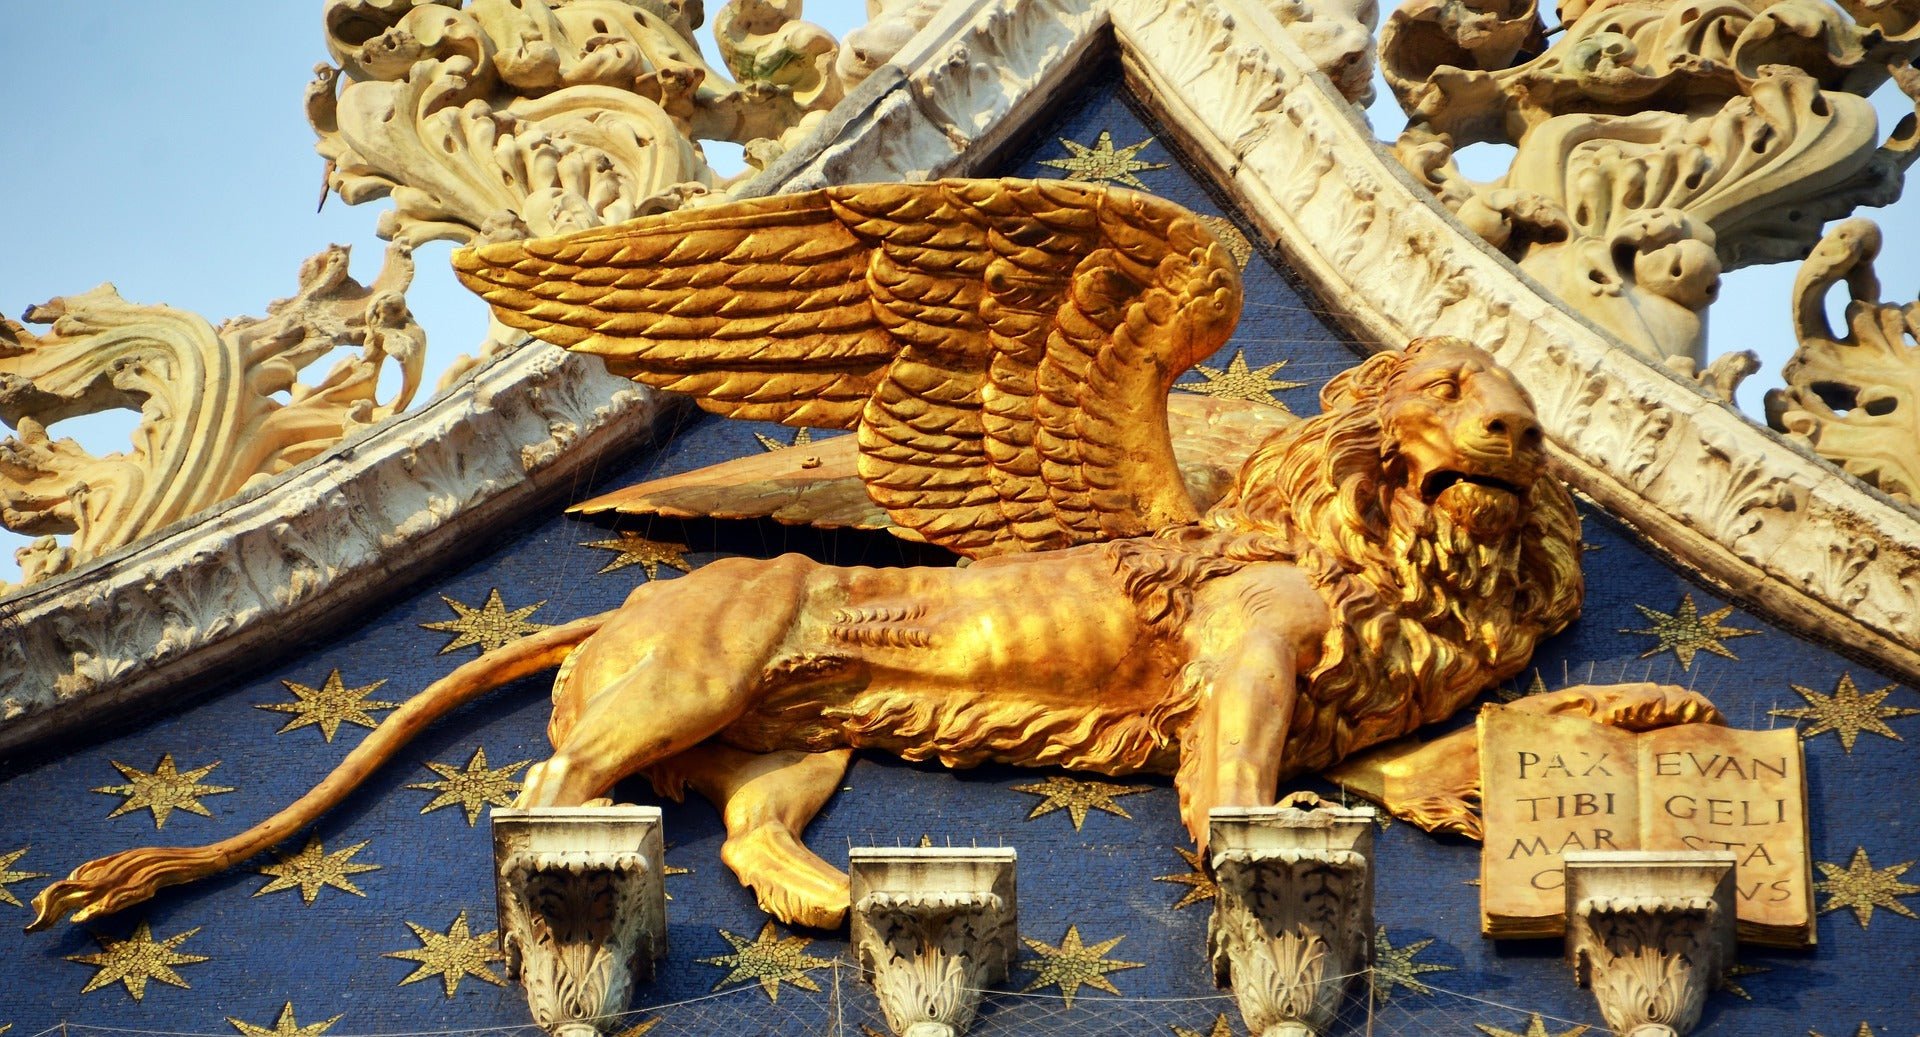 Sculpture Lion de Saint-Marc à Venise